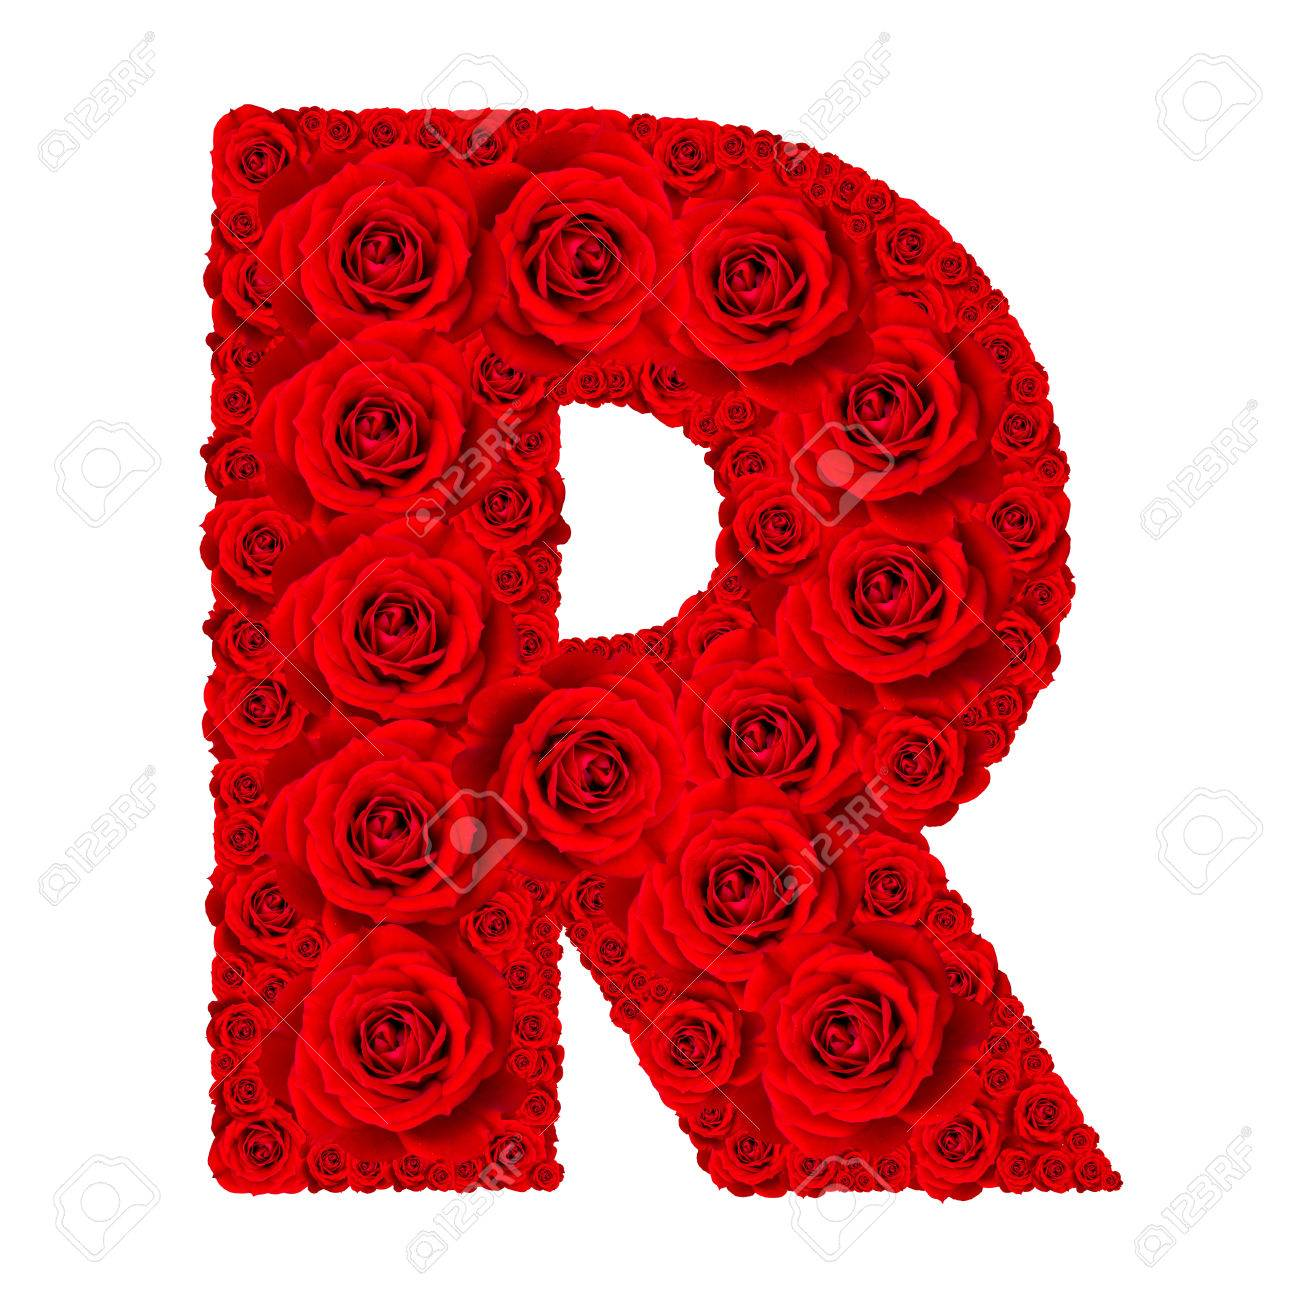 Rose alphabet set alphabet capital letter r made from red rose rose alphabet set alphabet capital letter r made from red rose blossoms isolated on white thecheapjerseys Image collections